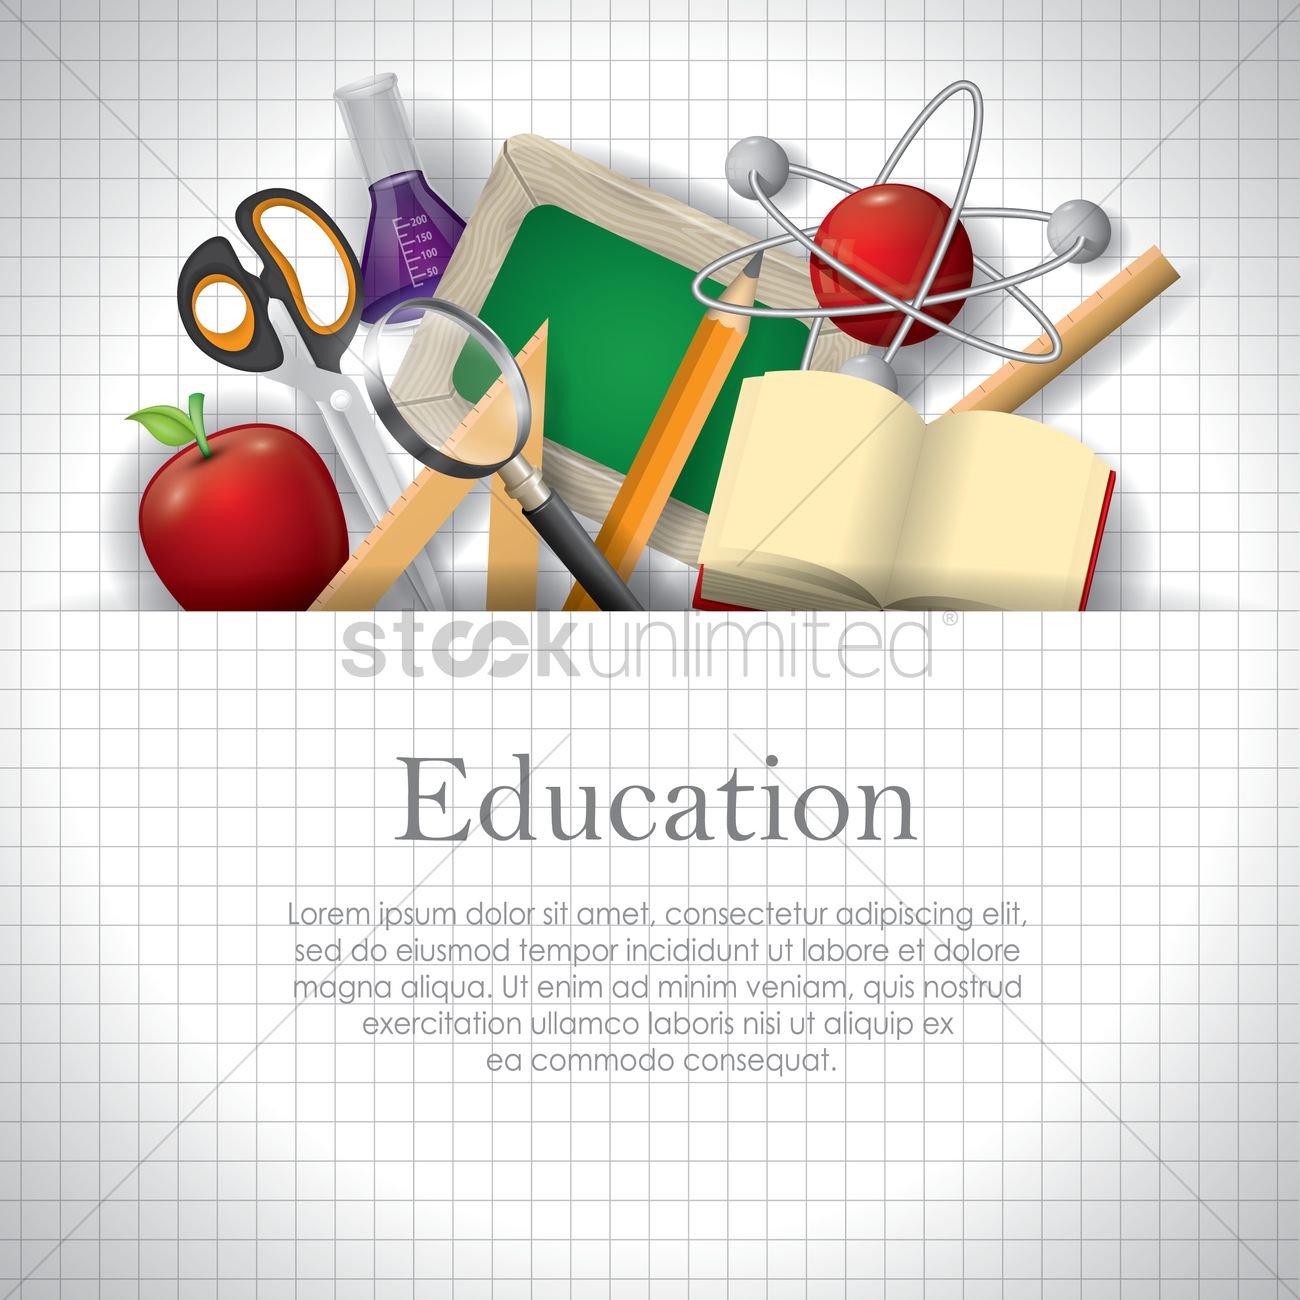 education wallpaper vector image 1821875 stockunlimited